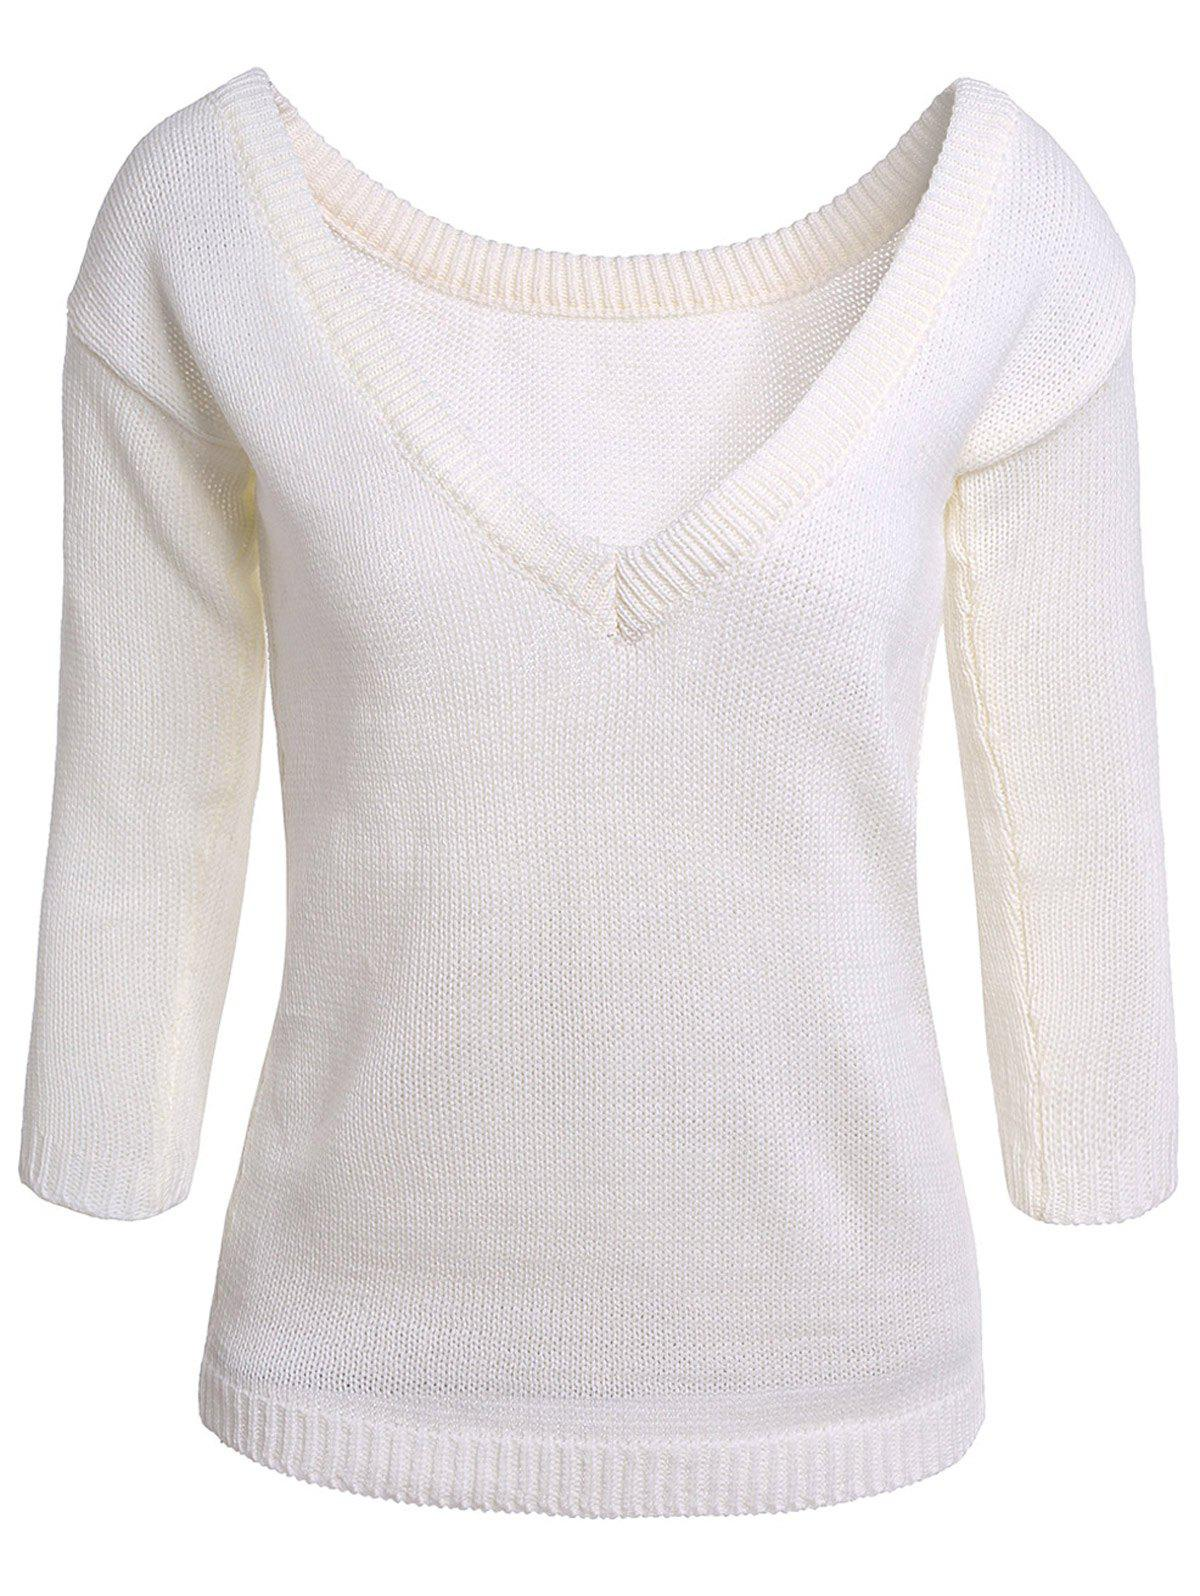 Sexy White Skew Collar Open Back Long Sleeve Sweater For Women - WHITE ONE SIZE(FIT SIZE XS TO M)